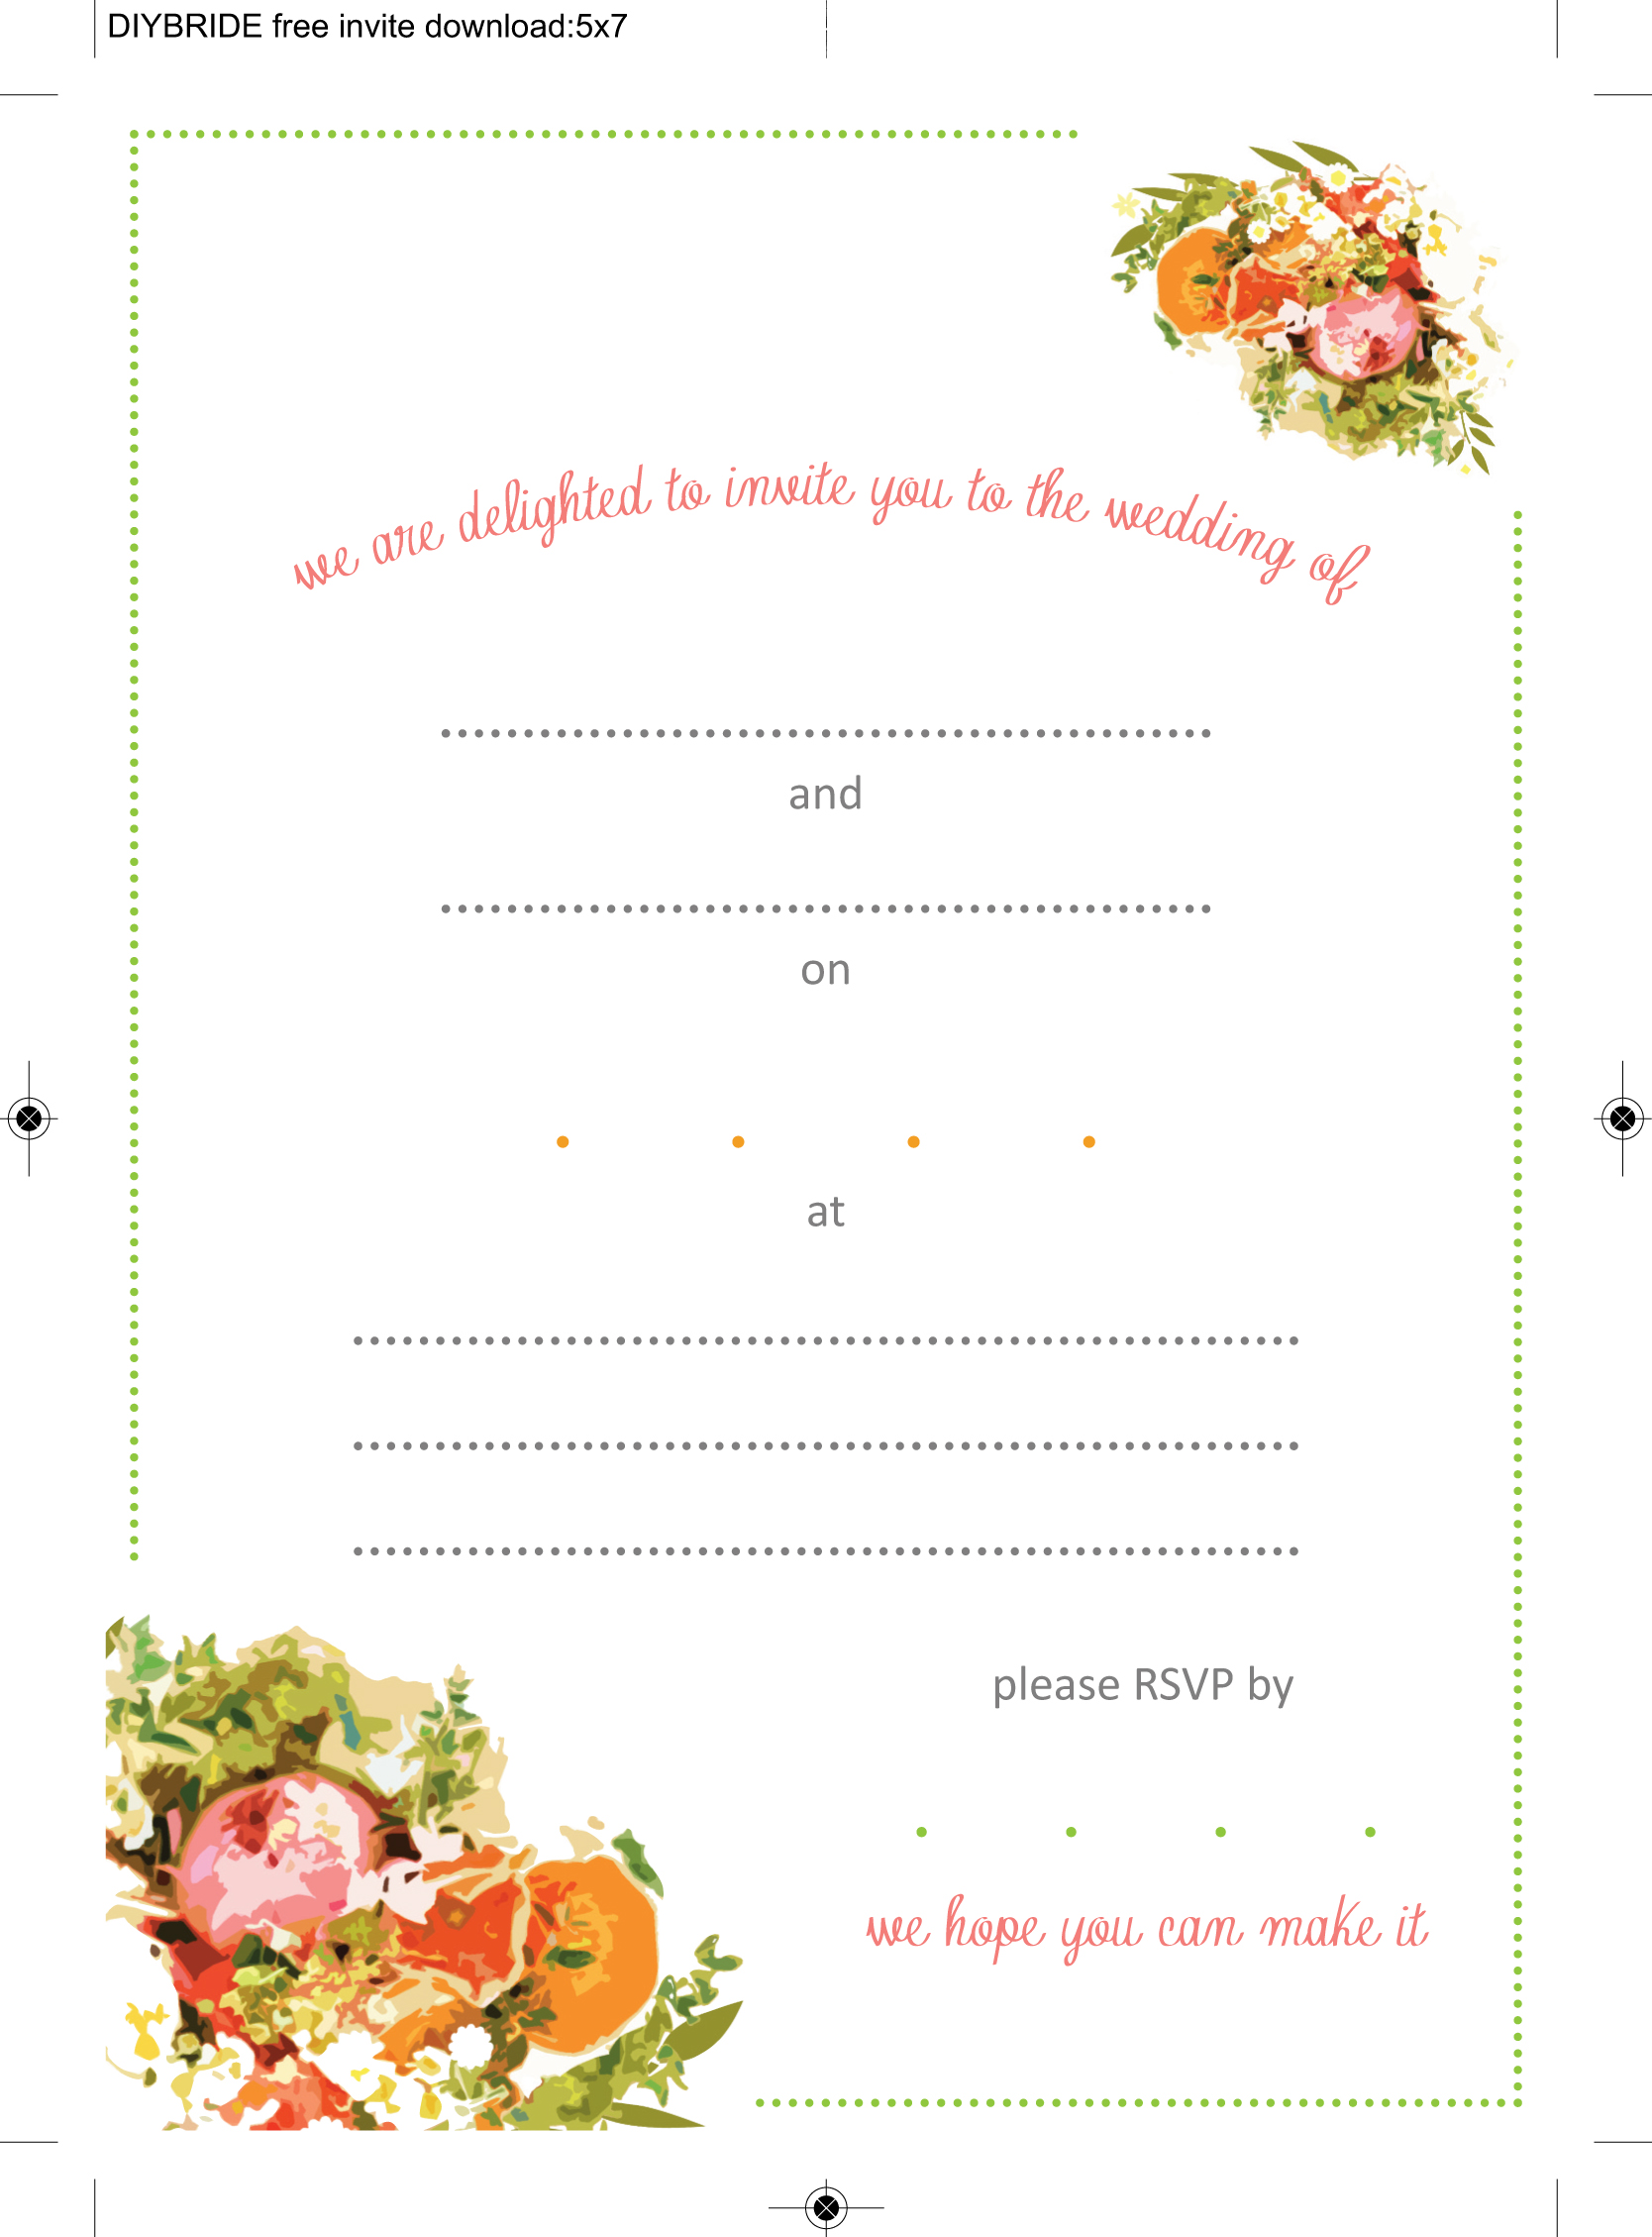 Wedding Invitation Templates That Are Cute And Easy to Make – Marriage Invitation Card Templates Free Download